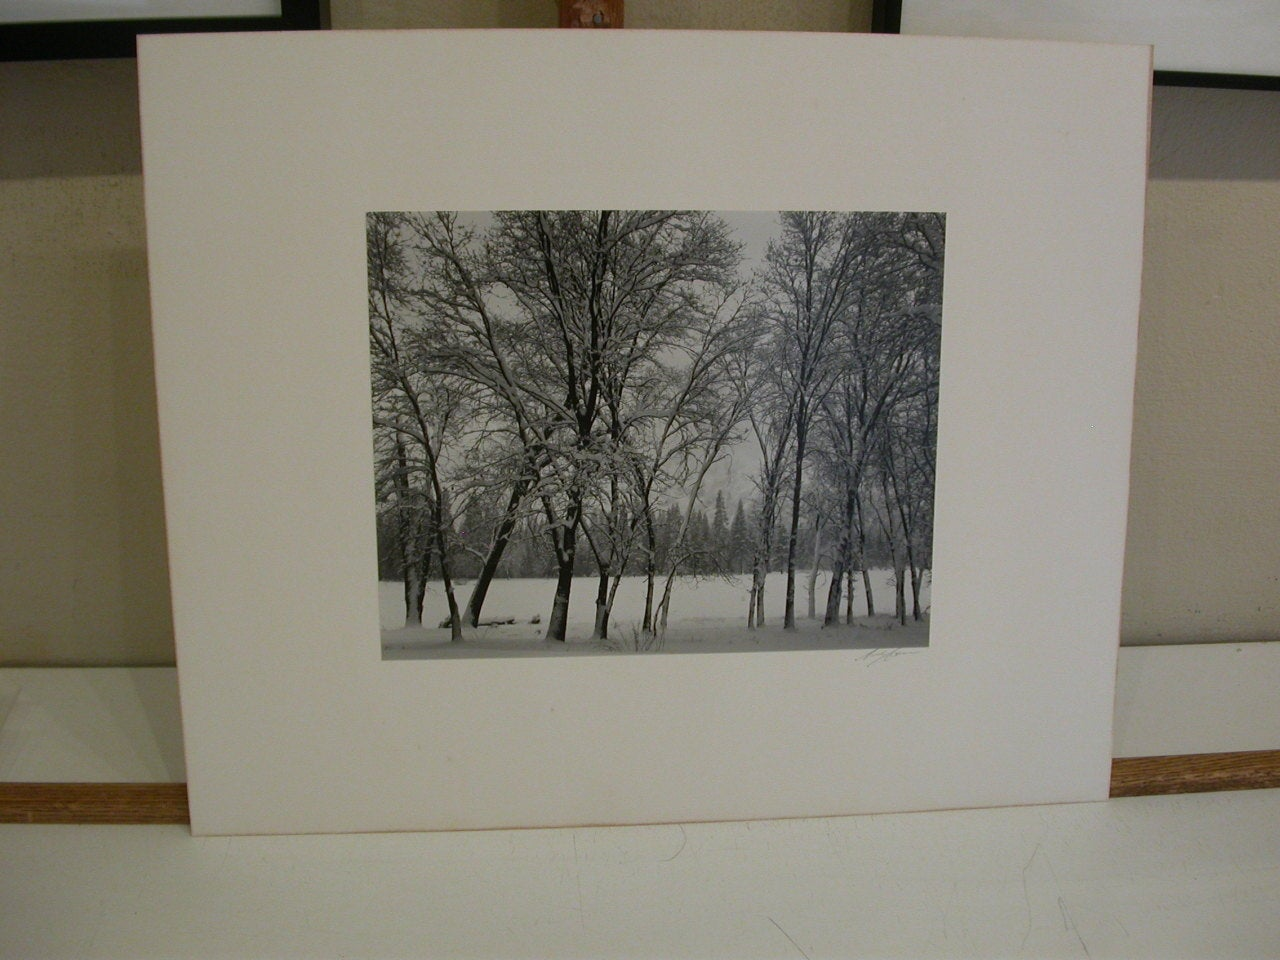 Young Oaks, Winter - Gray Black and White Photograph by Ansel Adams